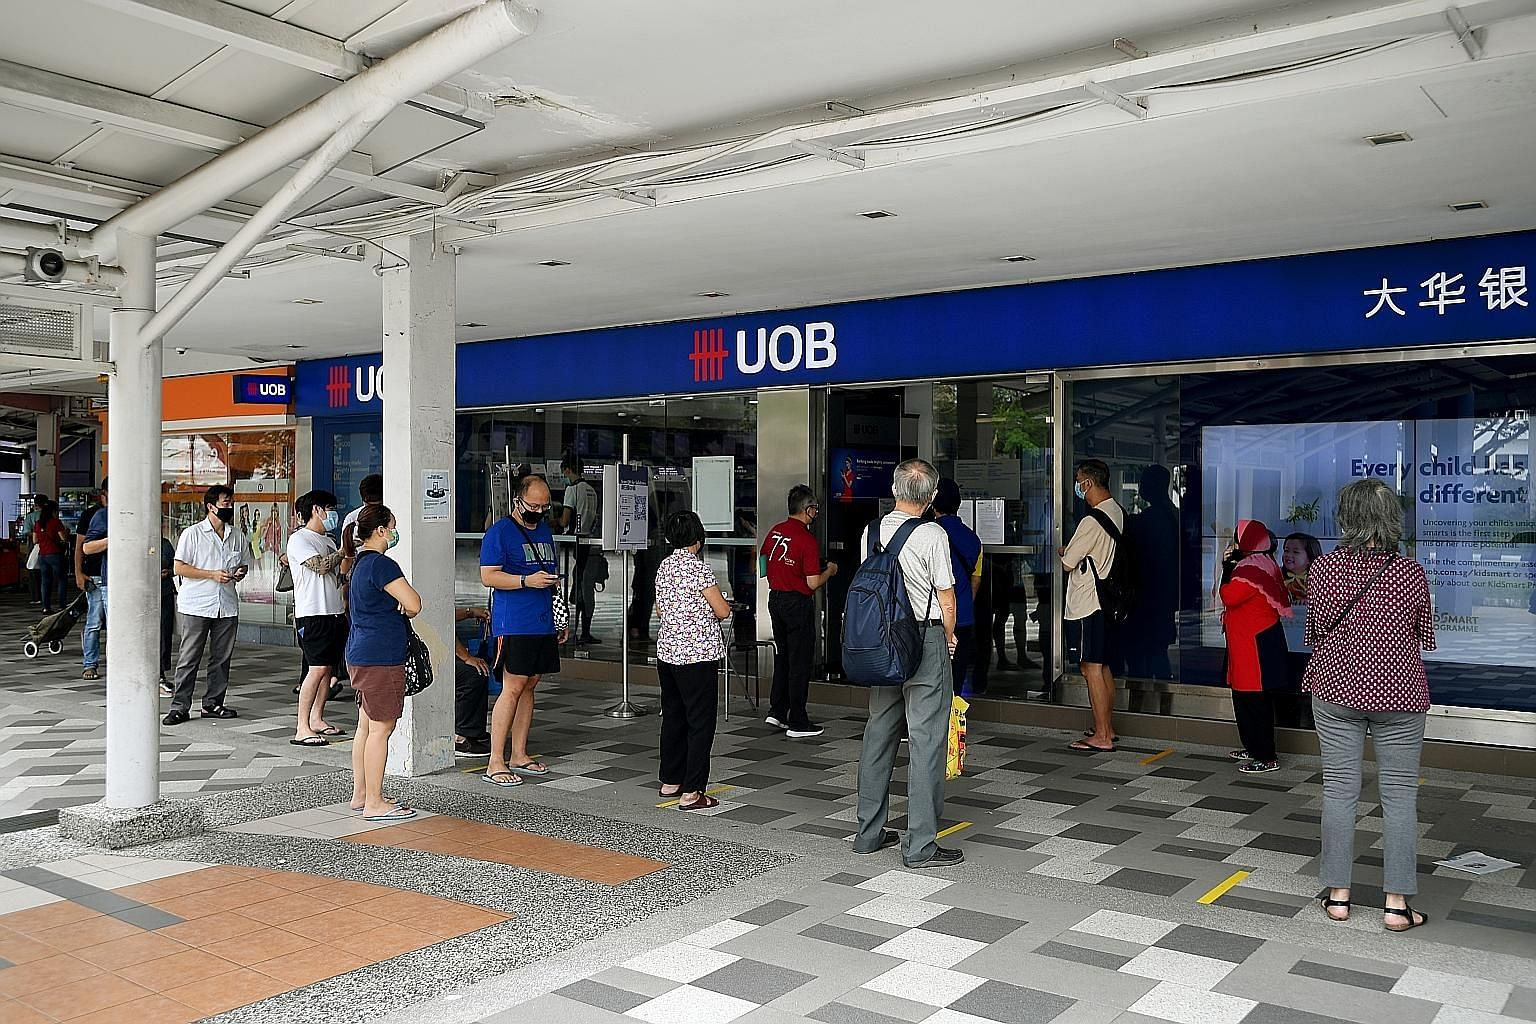 UOB group chief financial officer Lee Wai Fai says the bank wants to ensure its staff are ready to take on opportunities. United Overseas Bank says its three-month programme, dubbed the UOB Finance Academy, will enable participants to deepen their kn